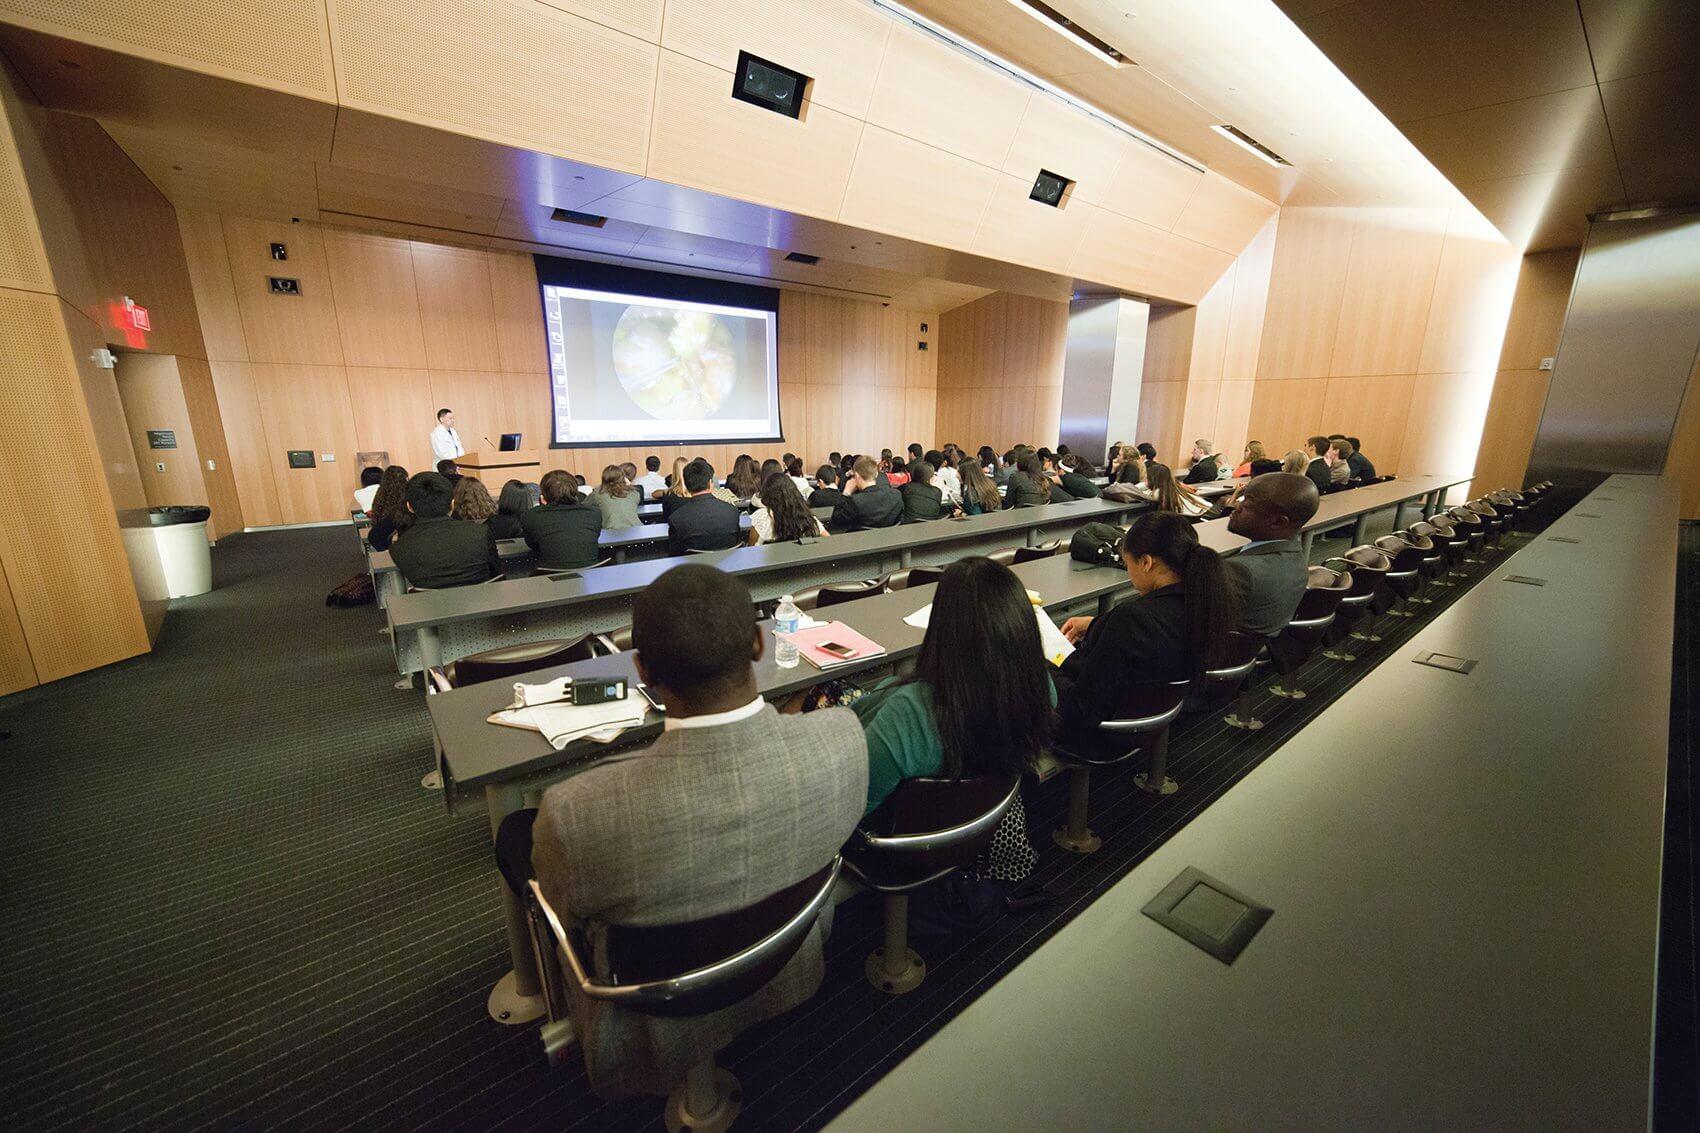 Lectures and video presentations provided an overview of different surgical specialties.